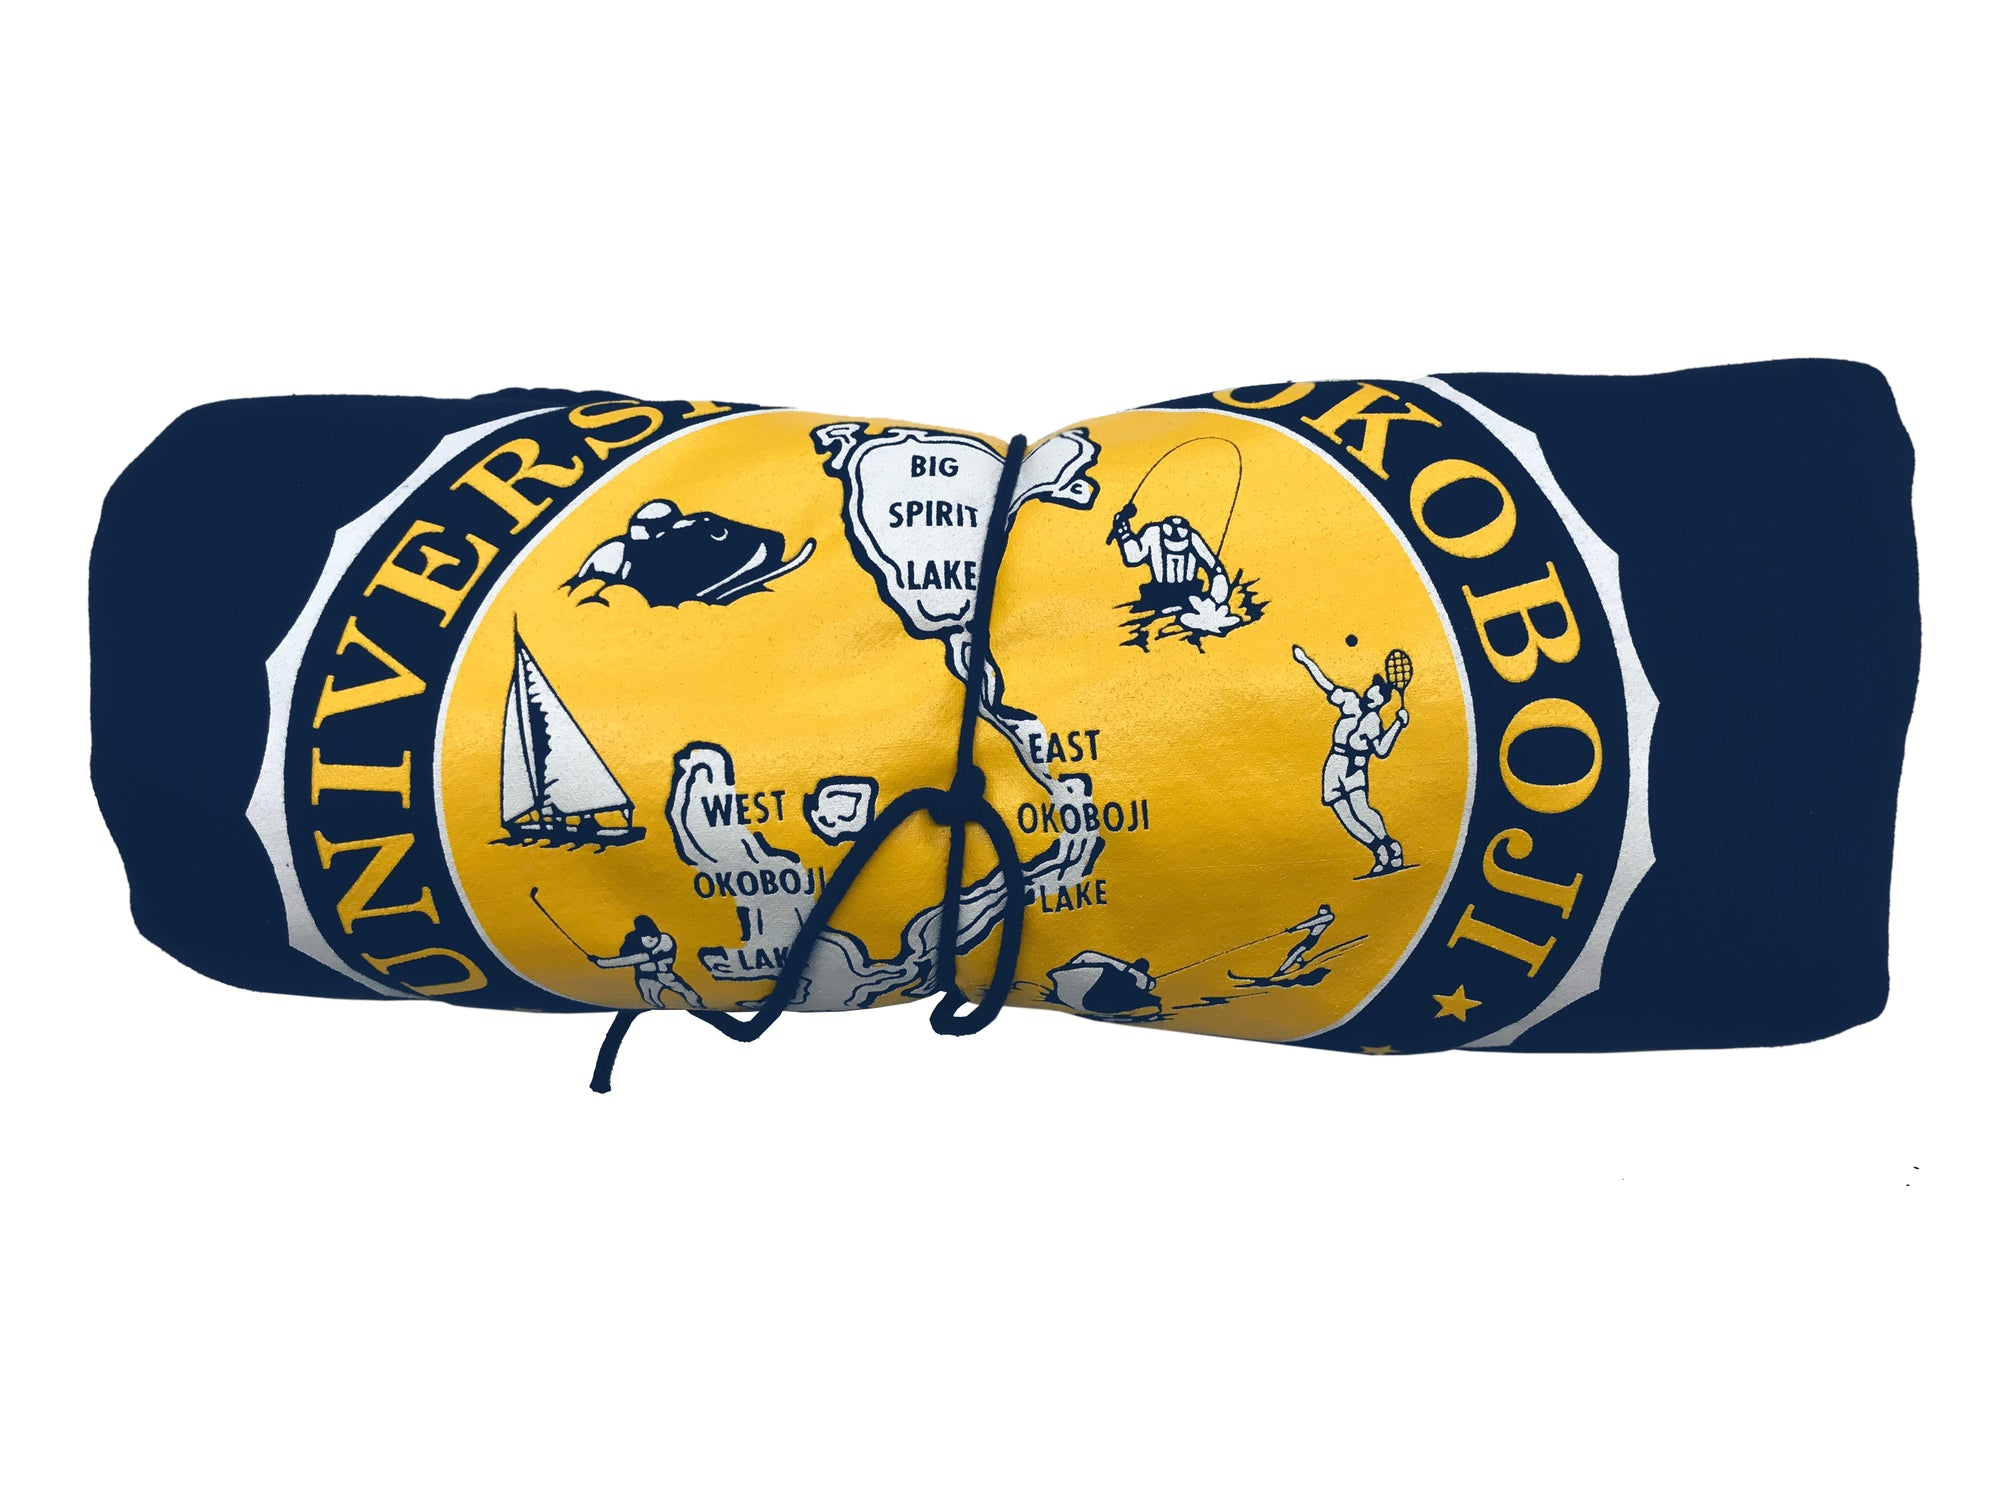 The U of O Navy & Gold Sweatshirt Blanket